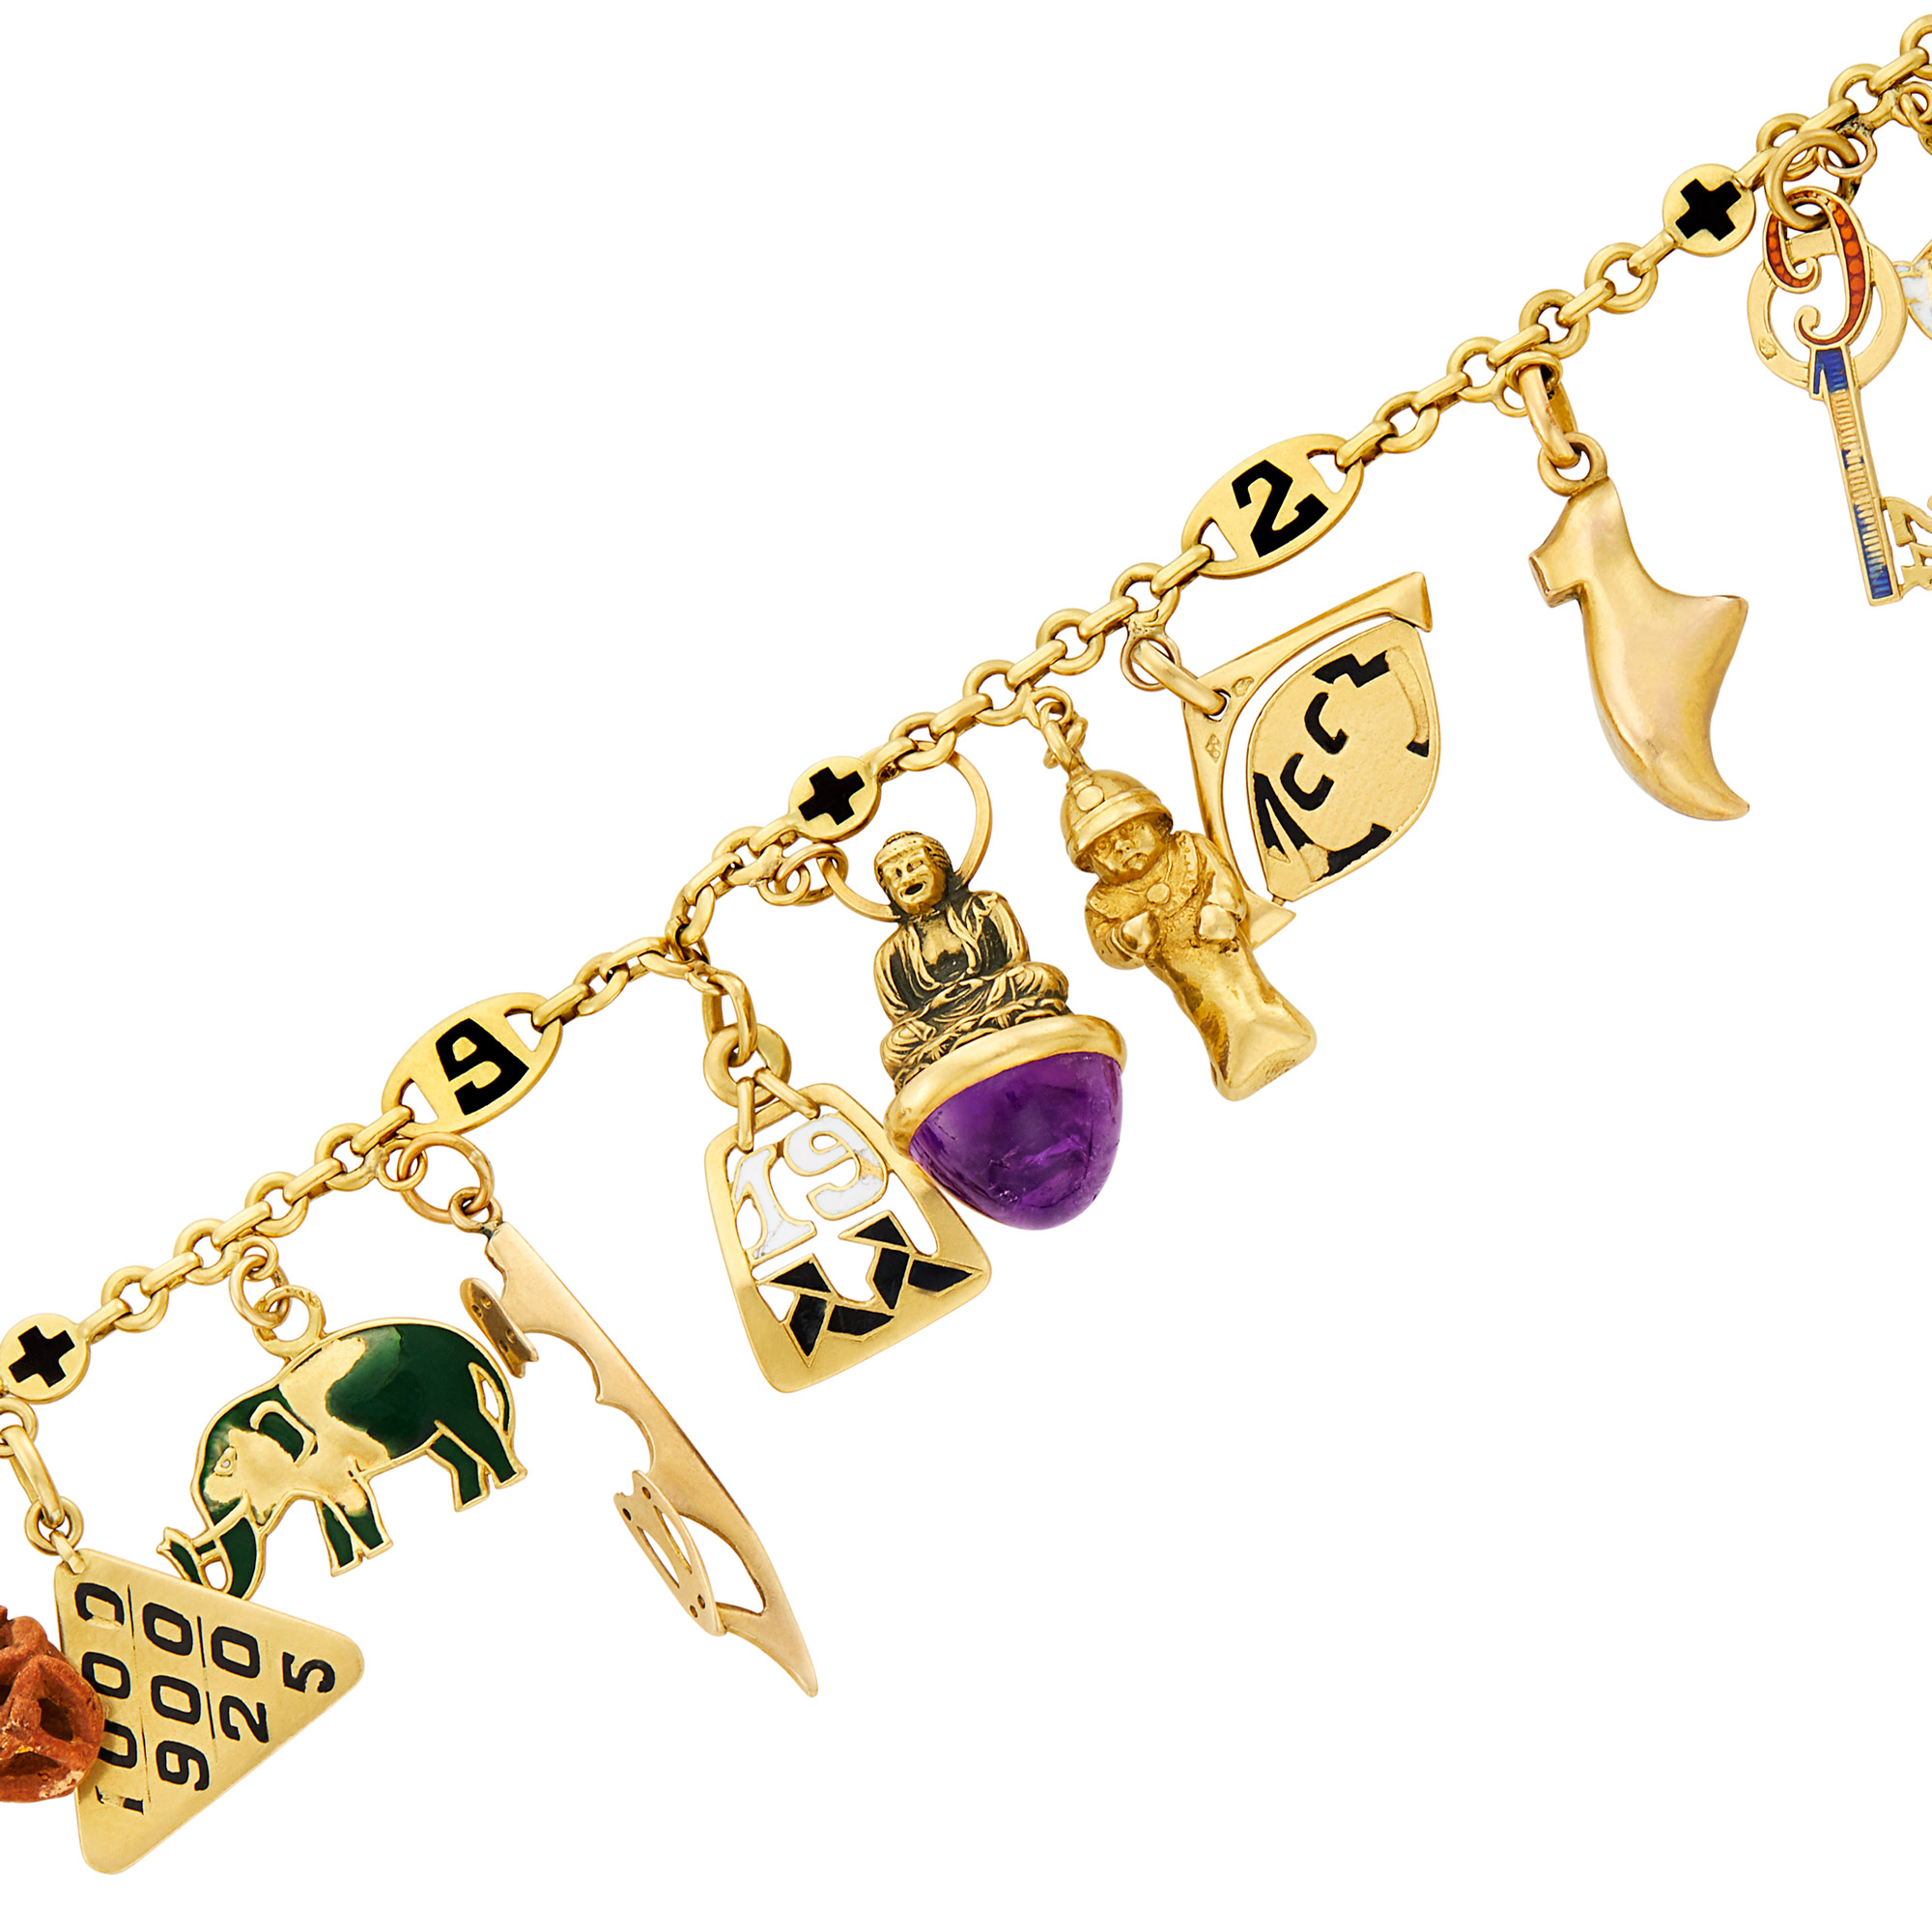 Lot image - Gold, Enamel and Gem-Set Charm Bracelet